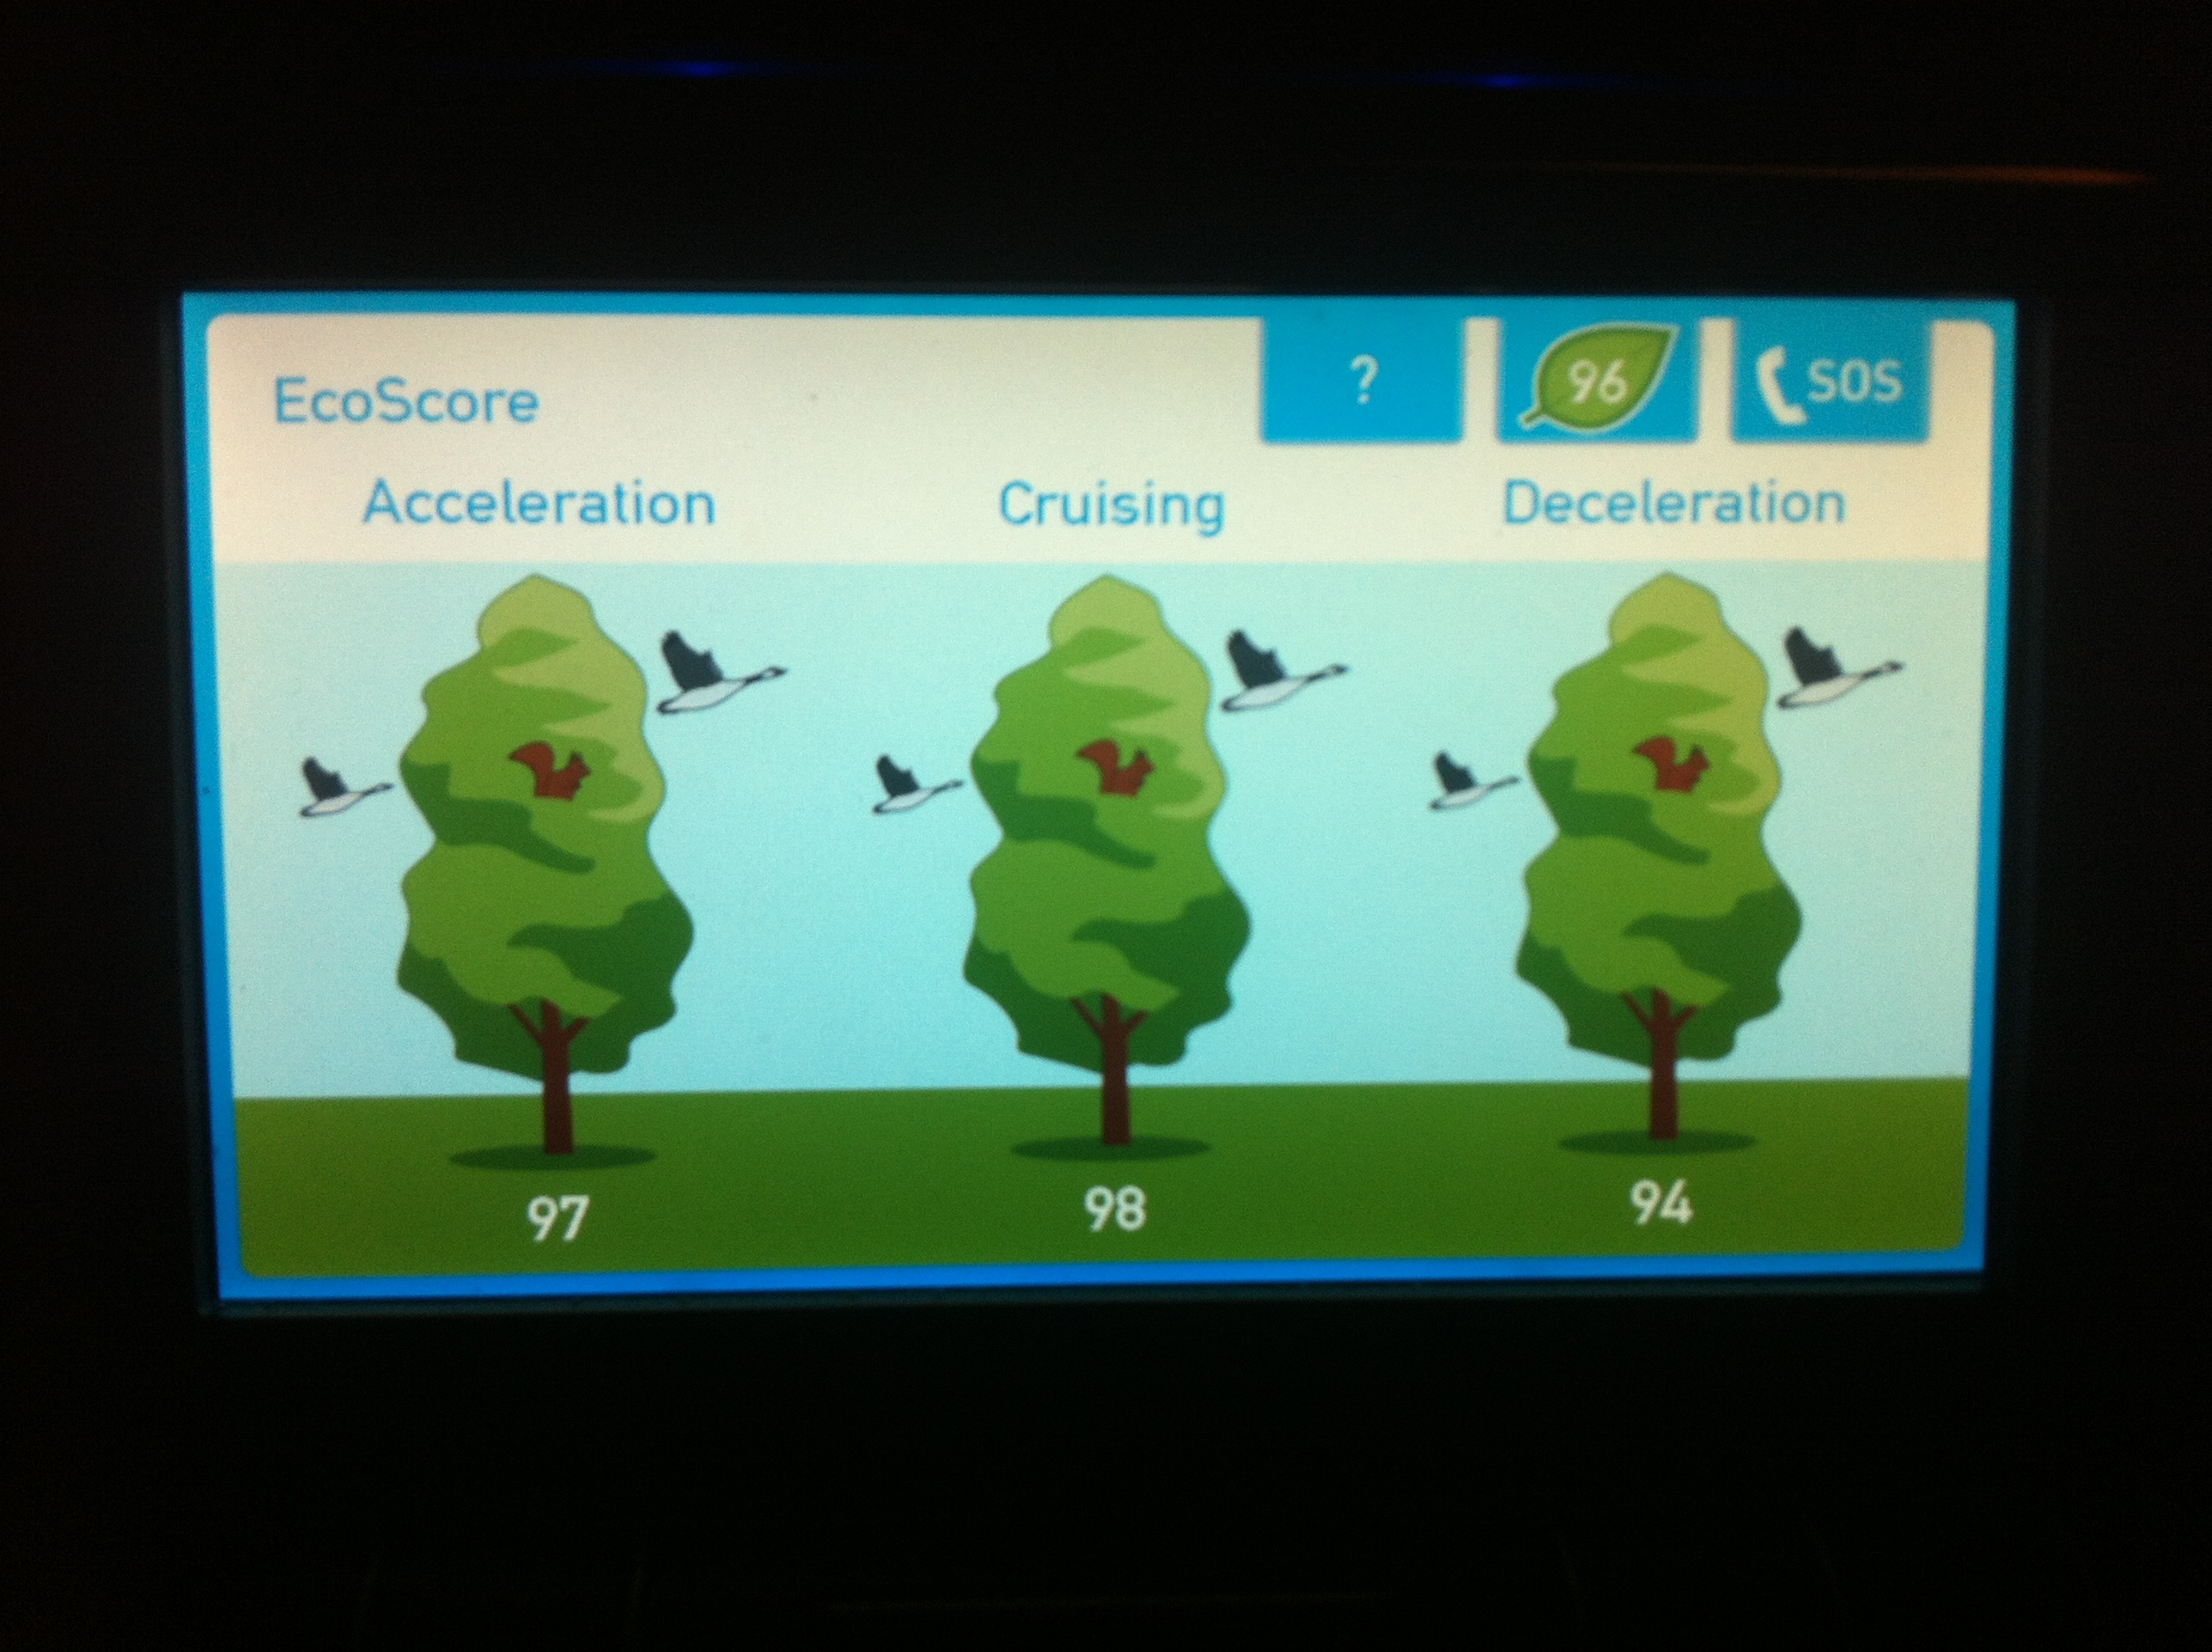 Interface Car2Go EcoScore